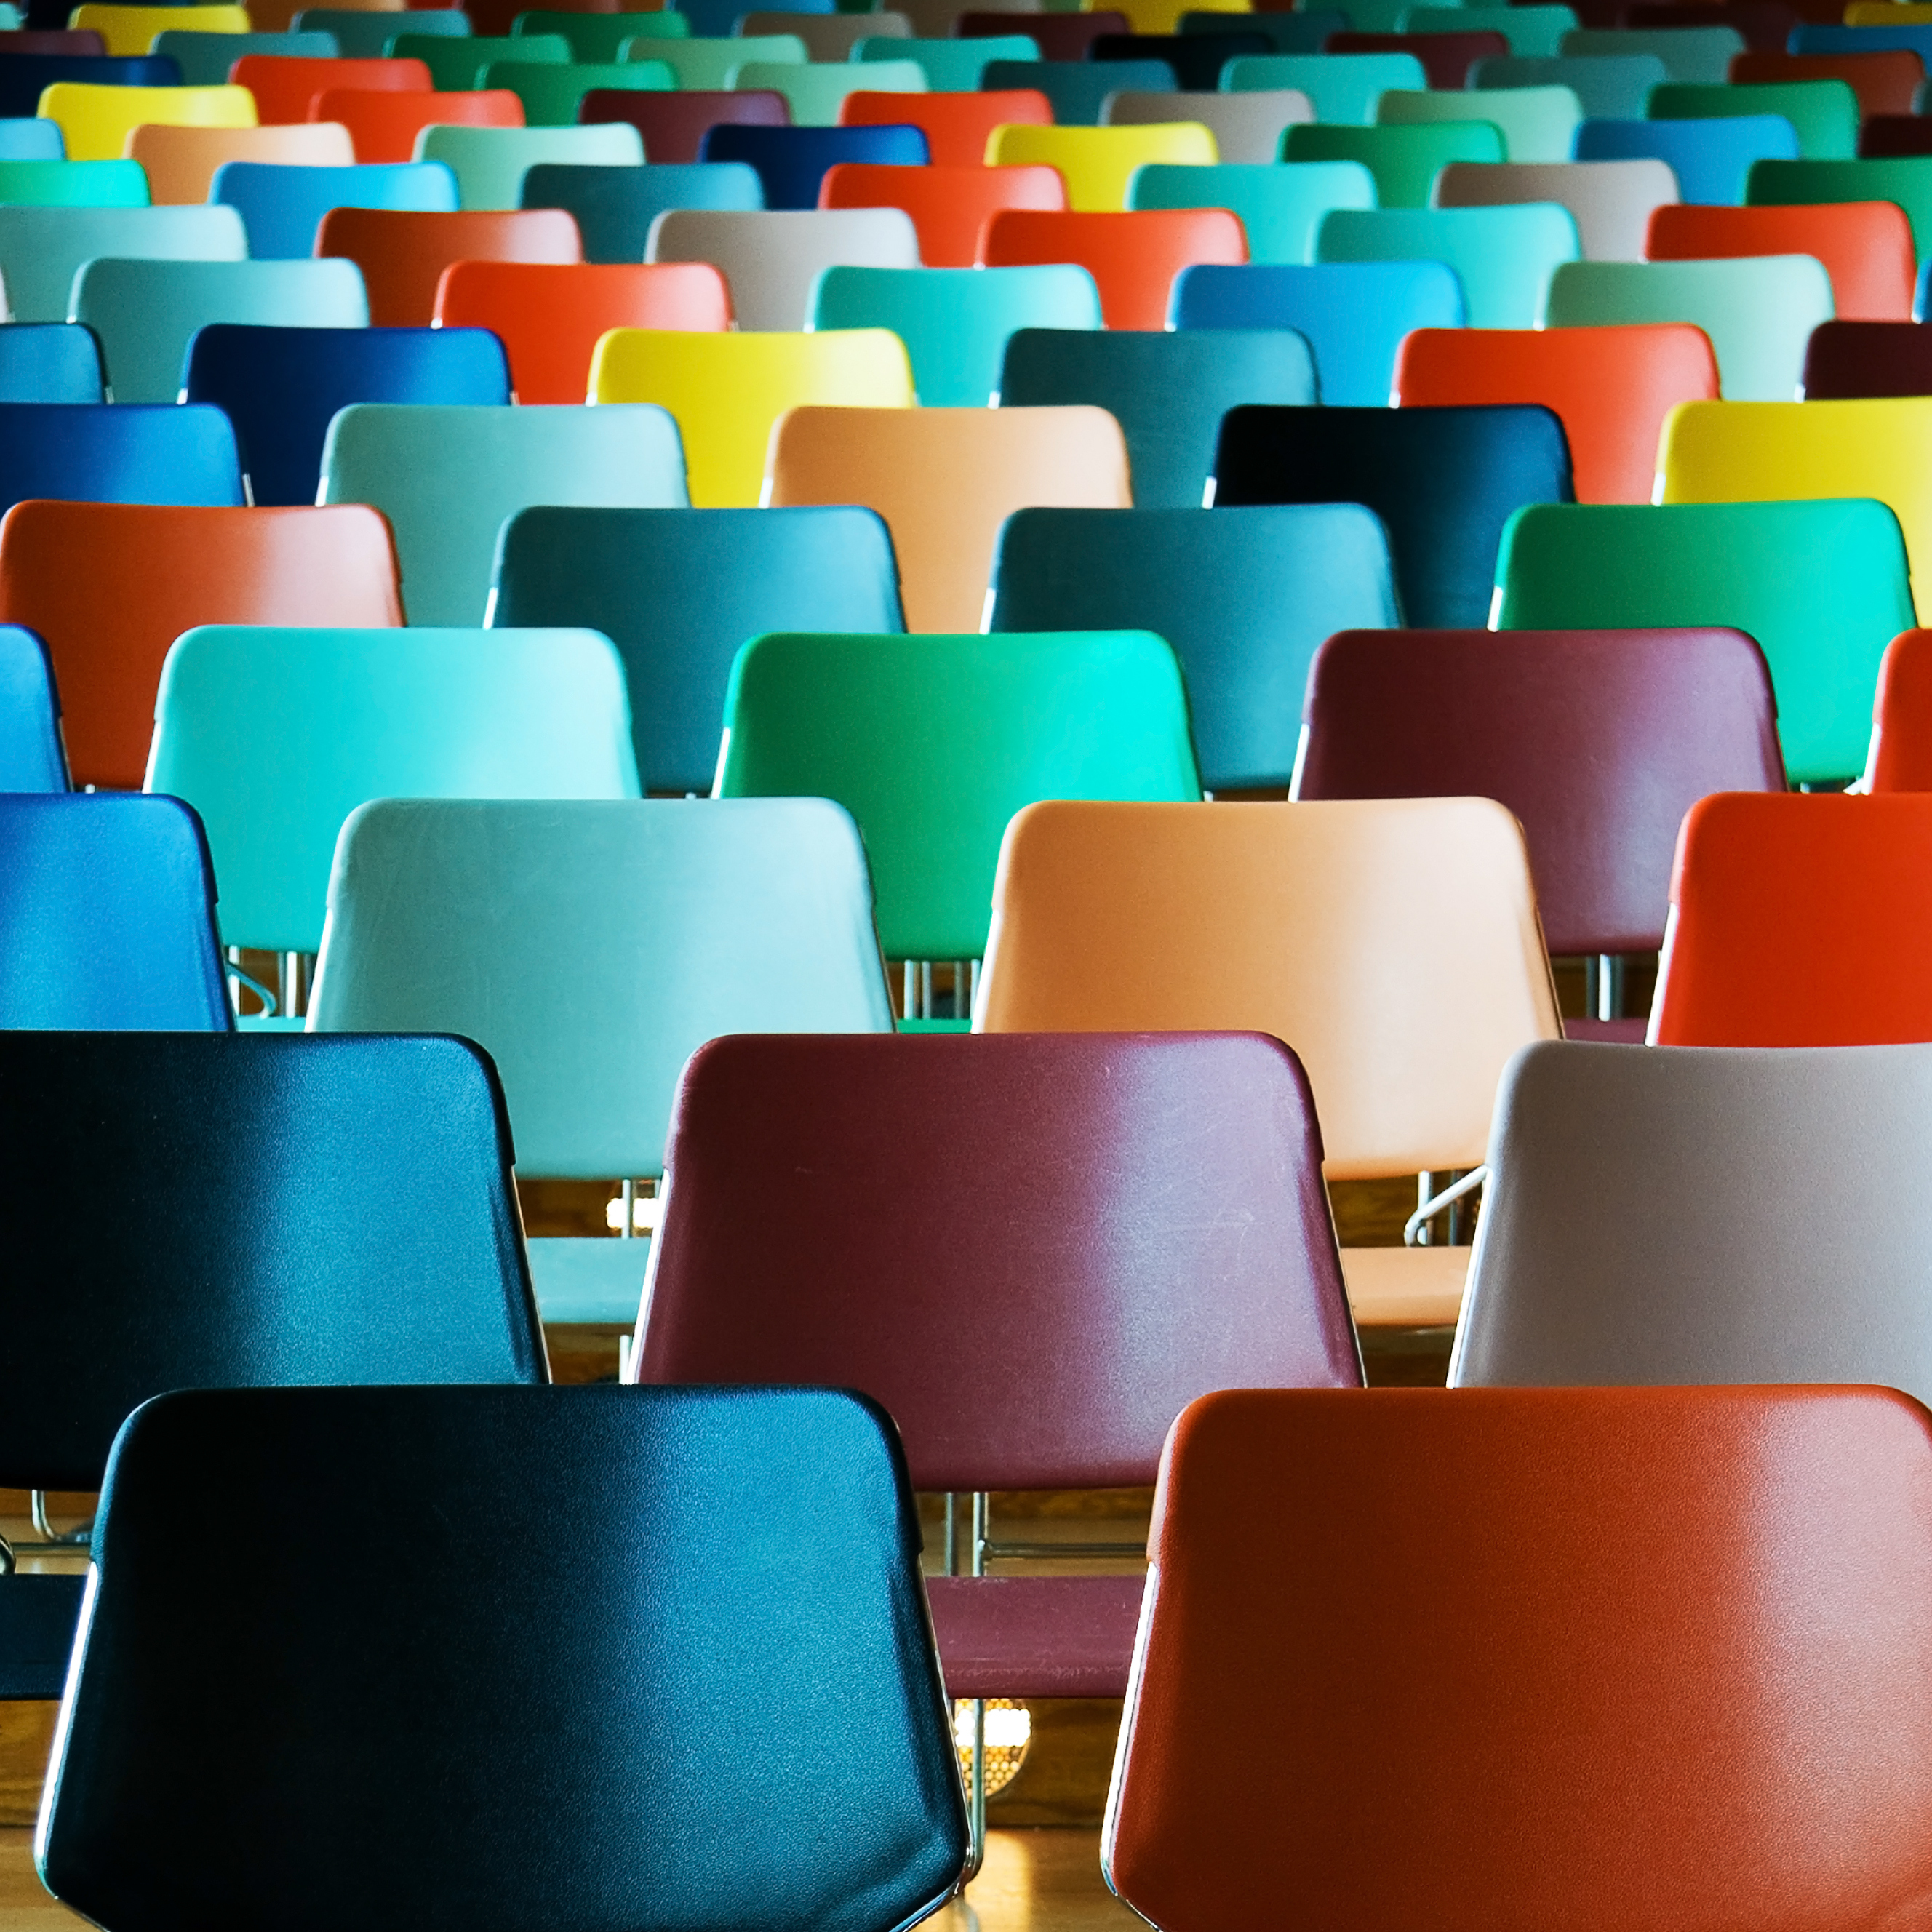 Empty colorful chairs